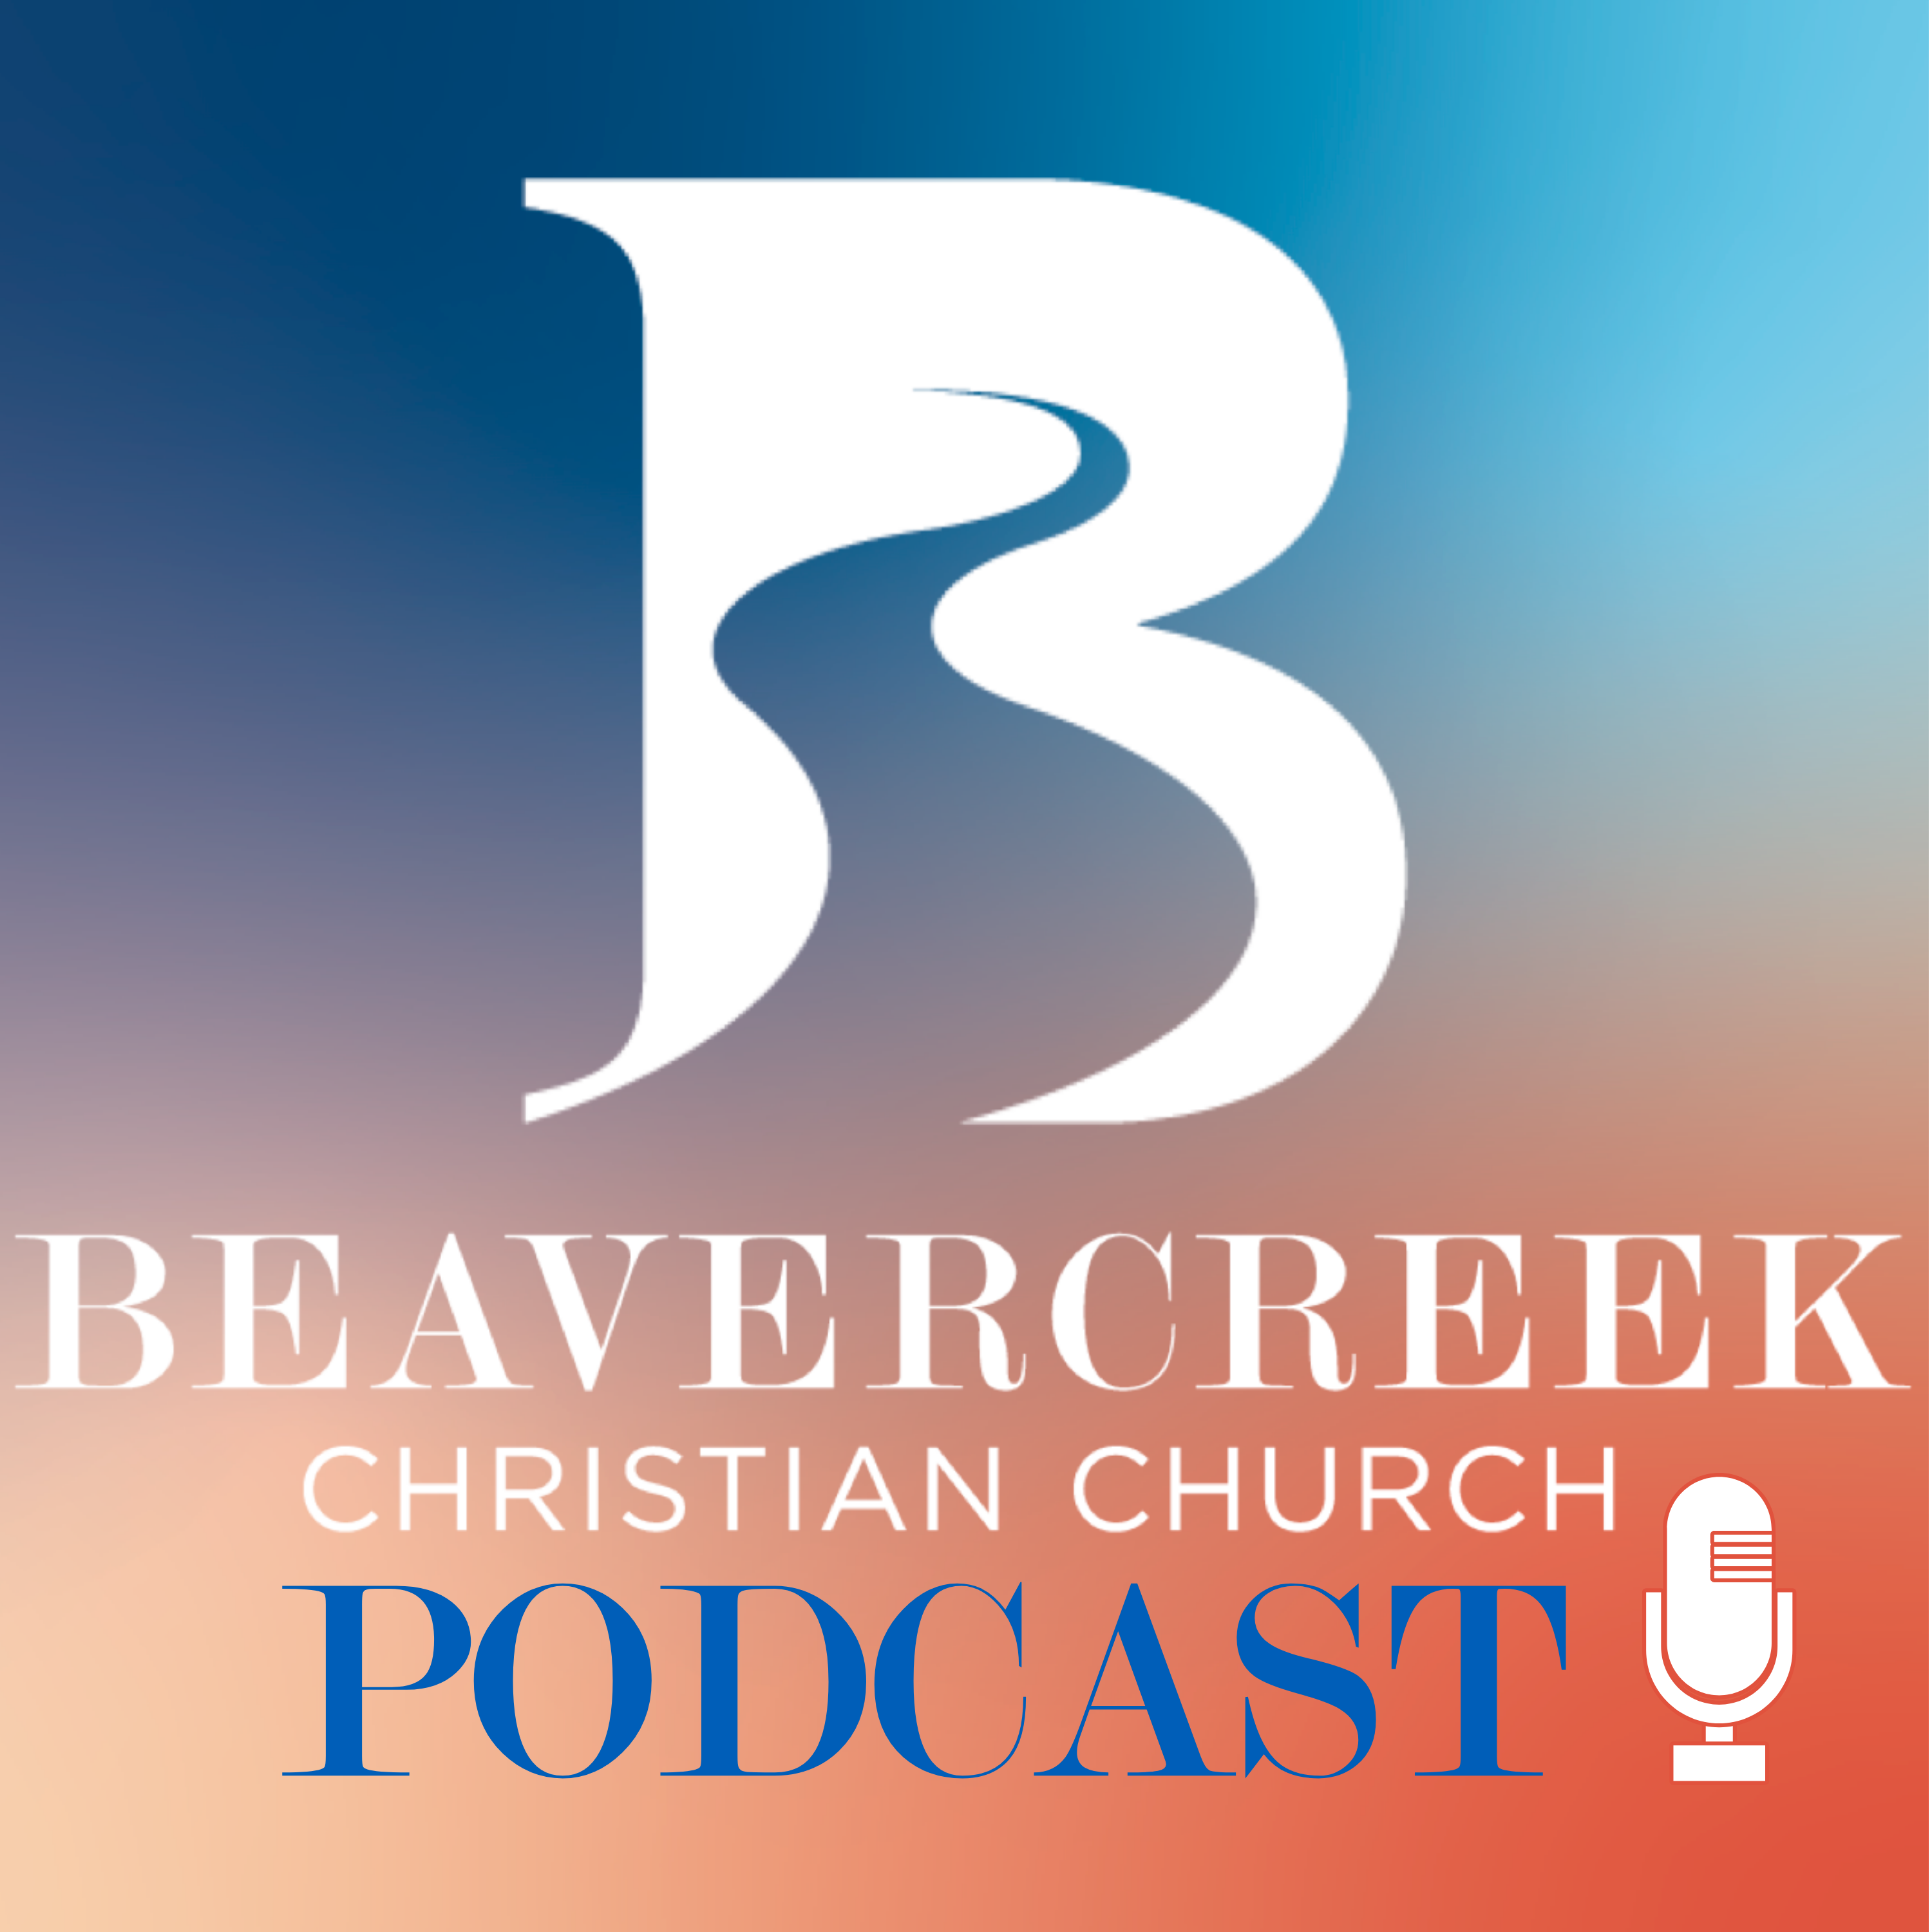 Beavercreek Christian Church Podcast